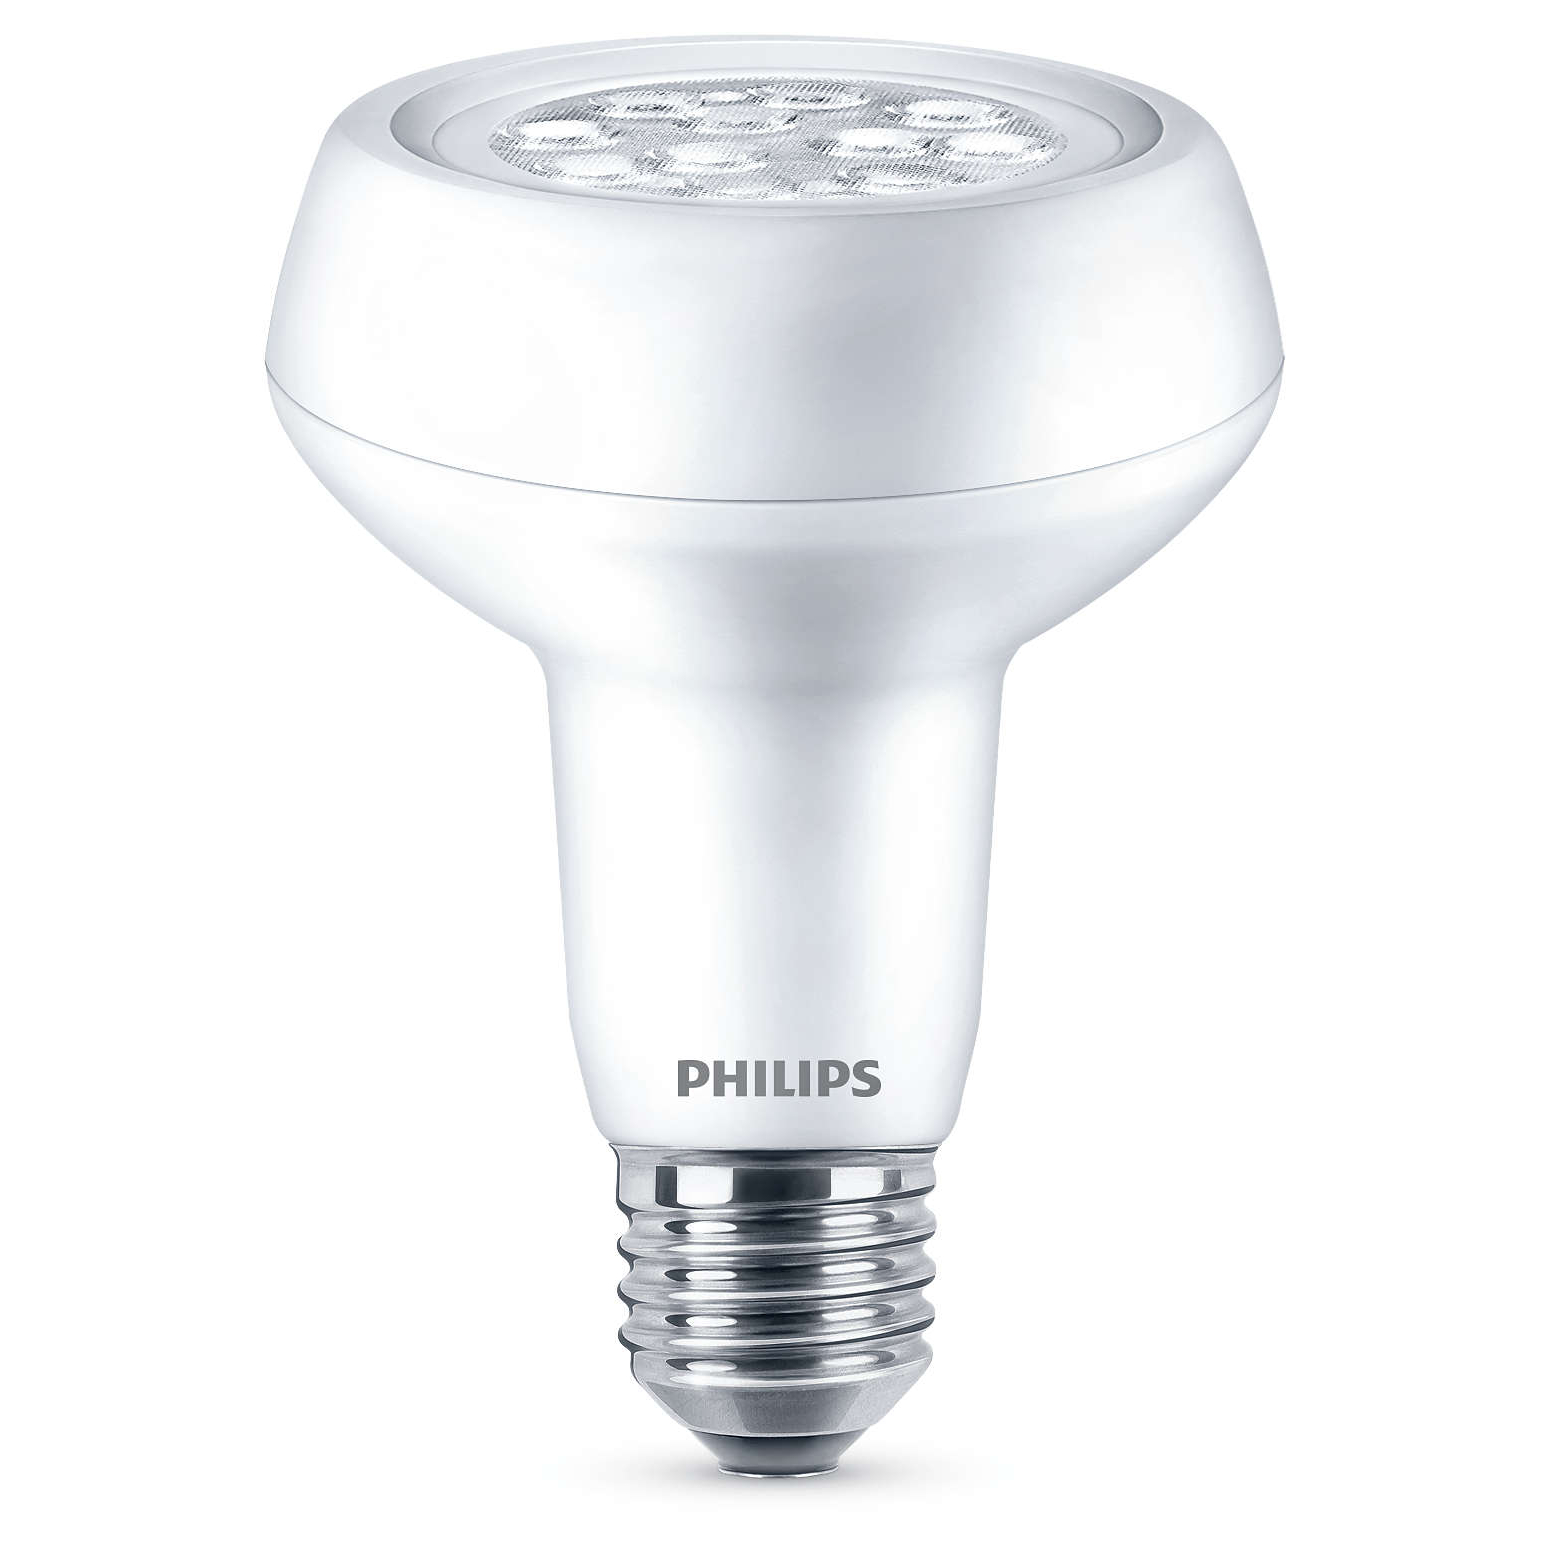 philips led r80 7 100w e27 edison reflector light bulb lamp 667lm warm white ebay. Black Bedroom Furniture Sets. Home Design Ideas